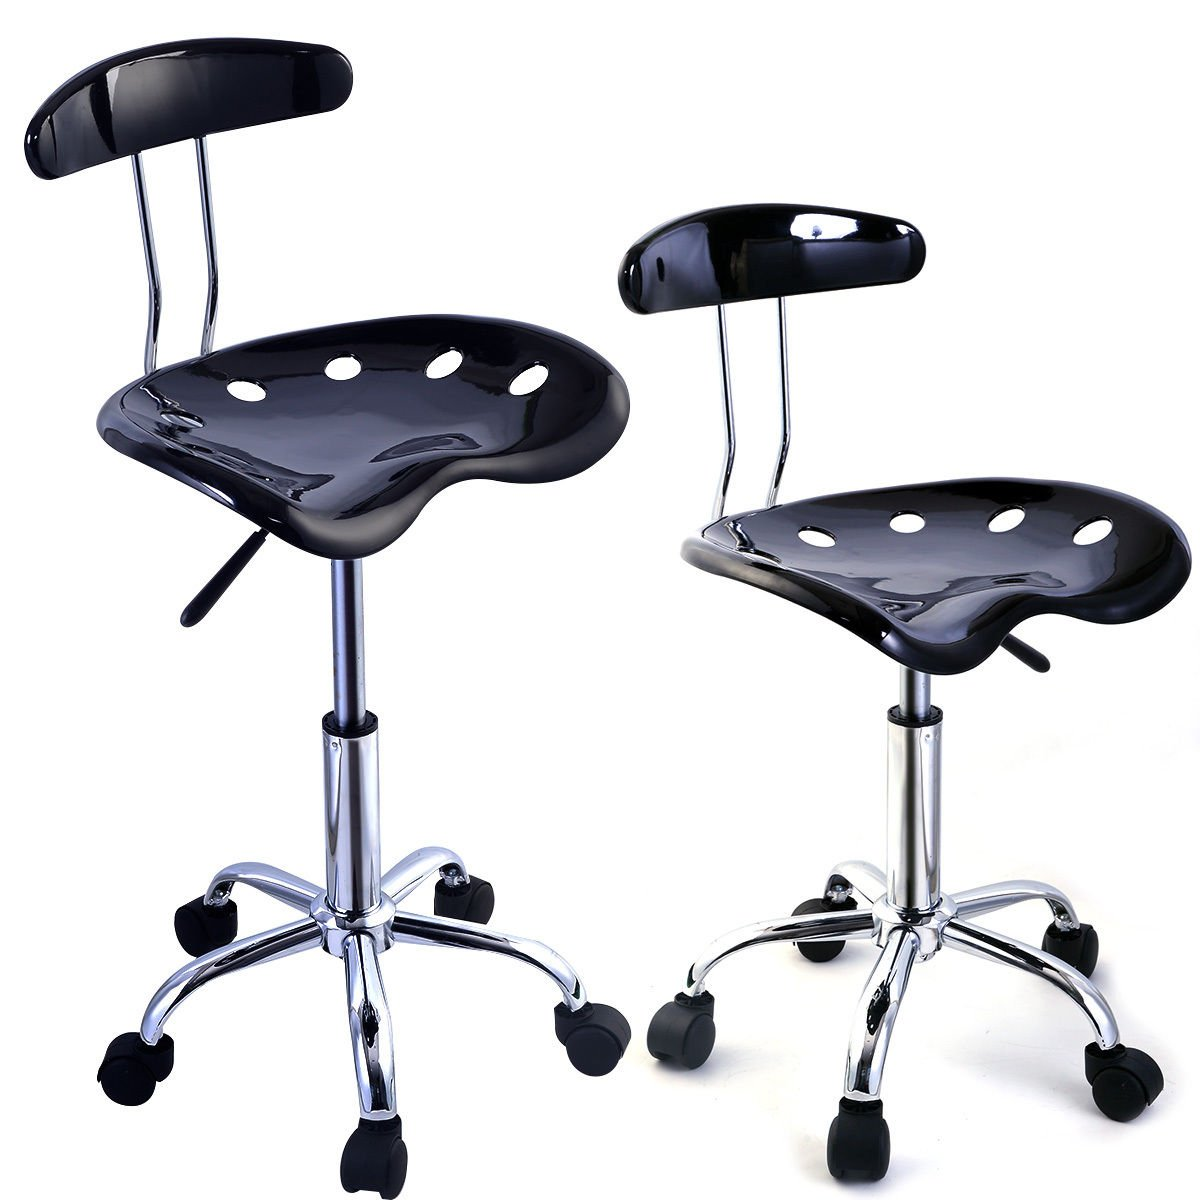 2PC Adjustable Bar Stools ABS Tractor Seat